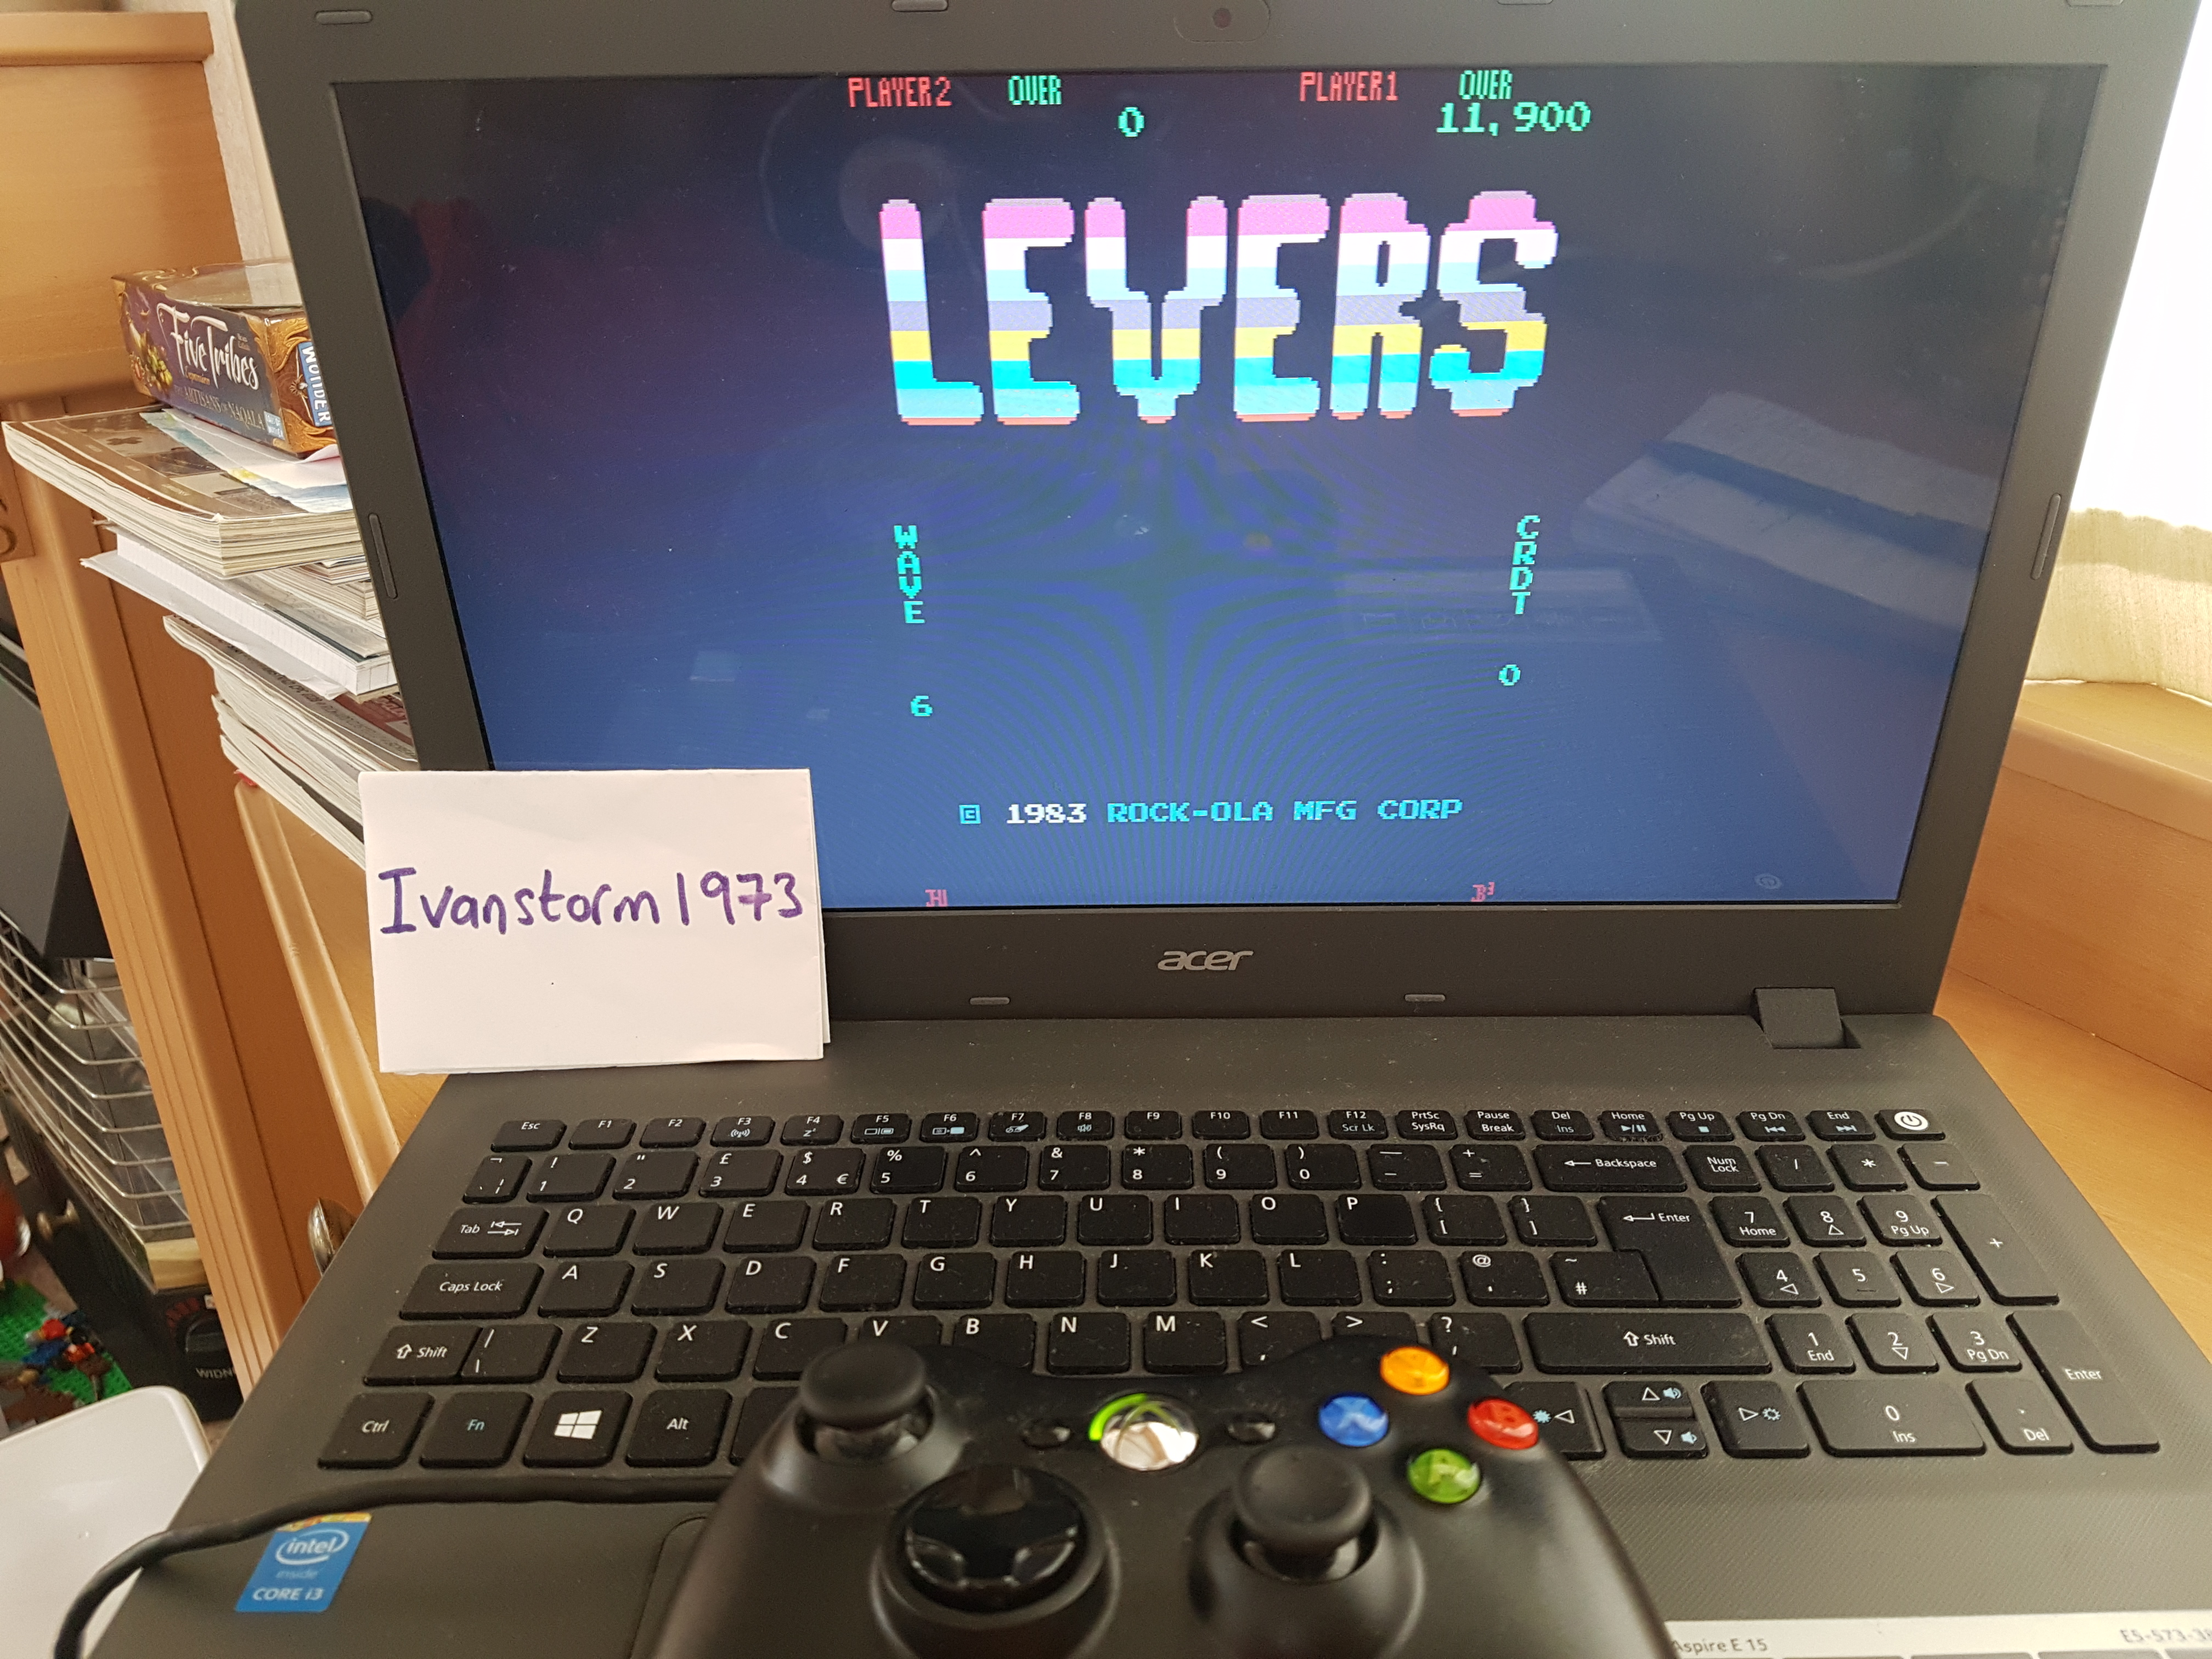 Levers [levers] 11,900 points